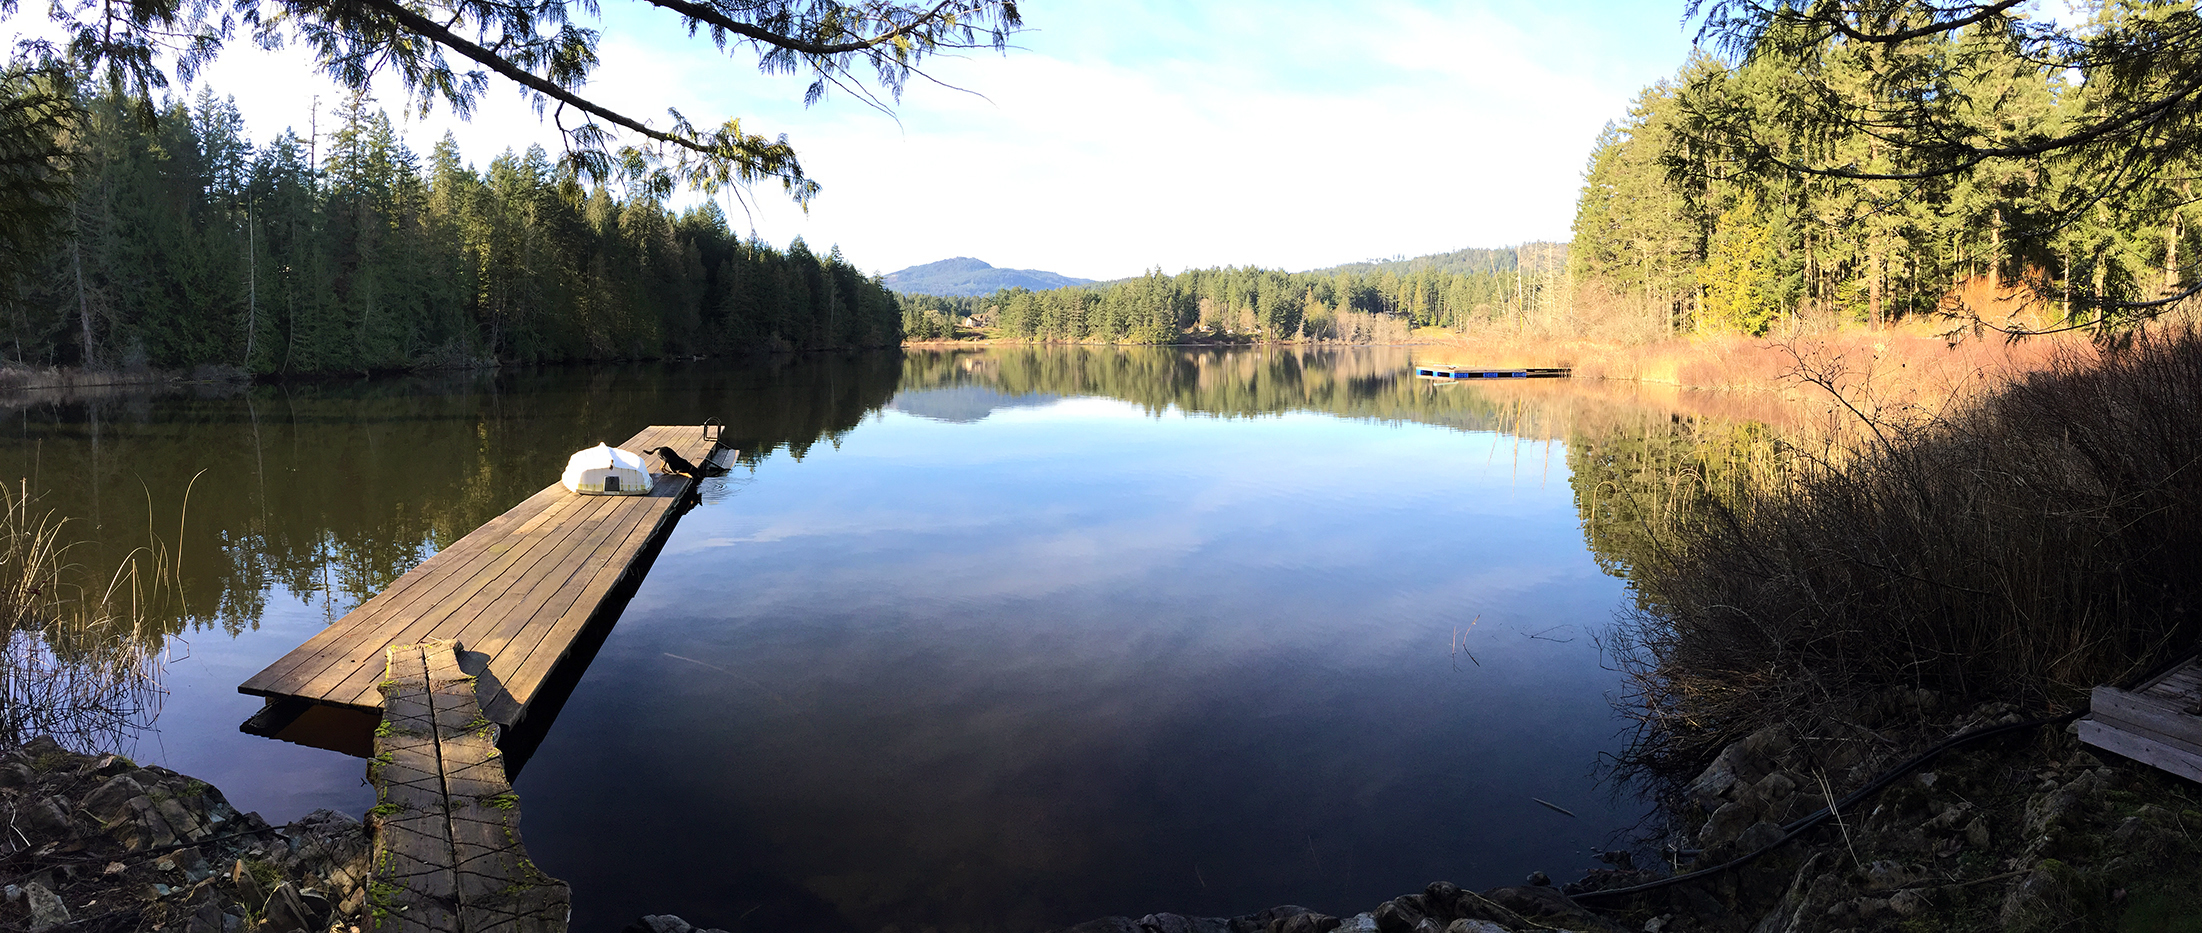 Weston Lake. Where in winter, a beautiful stillness brings peace, and in summer, lazy lakeside memories are made. A truly special place to be enjoyed for many generations to come.